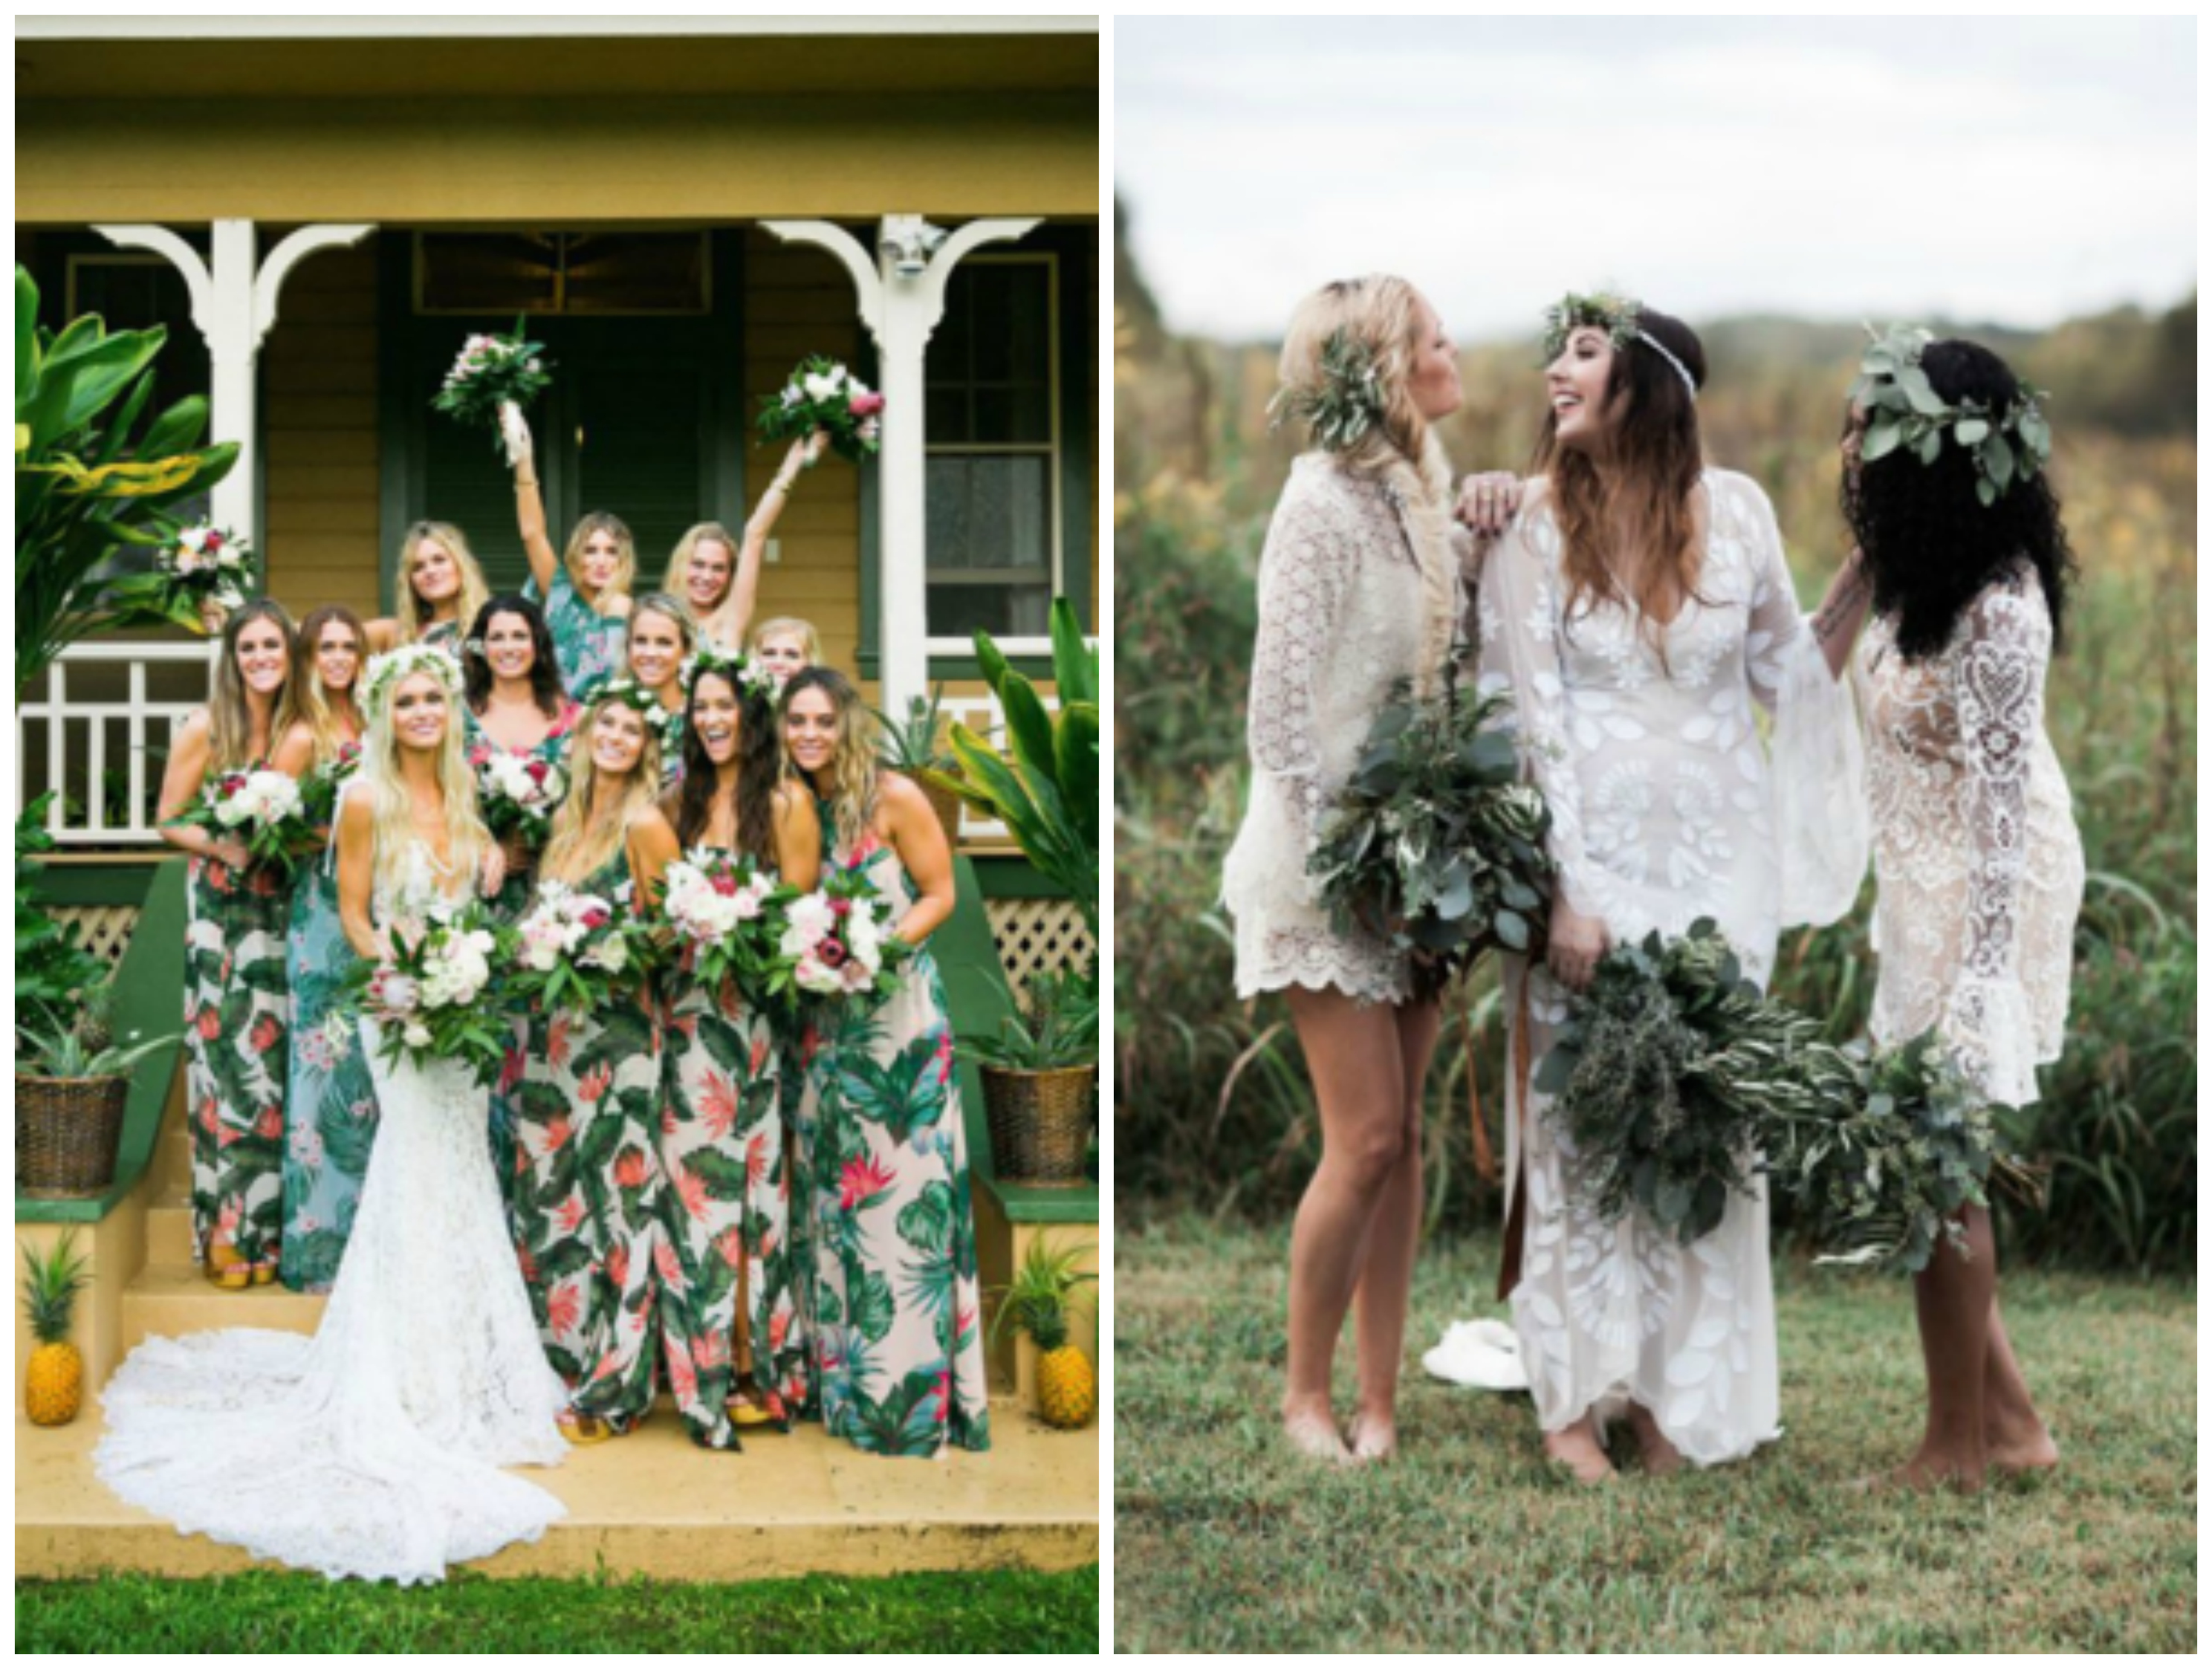 Friday inspiration boho bridesmaid azazie blog solid bridesmaids dress colors think dresses with lace overlay or floral patterns in pastels or neutral colors while being flowy draped and layered ombrellifo Images